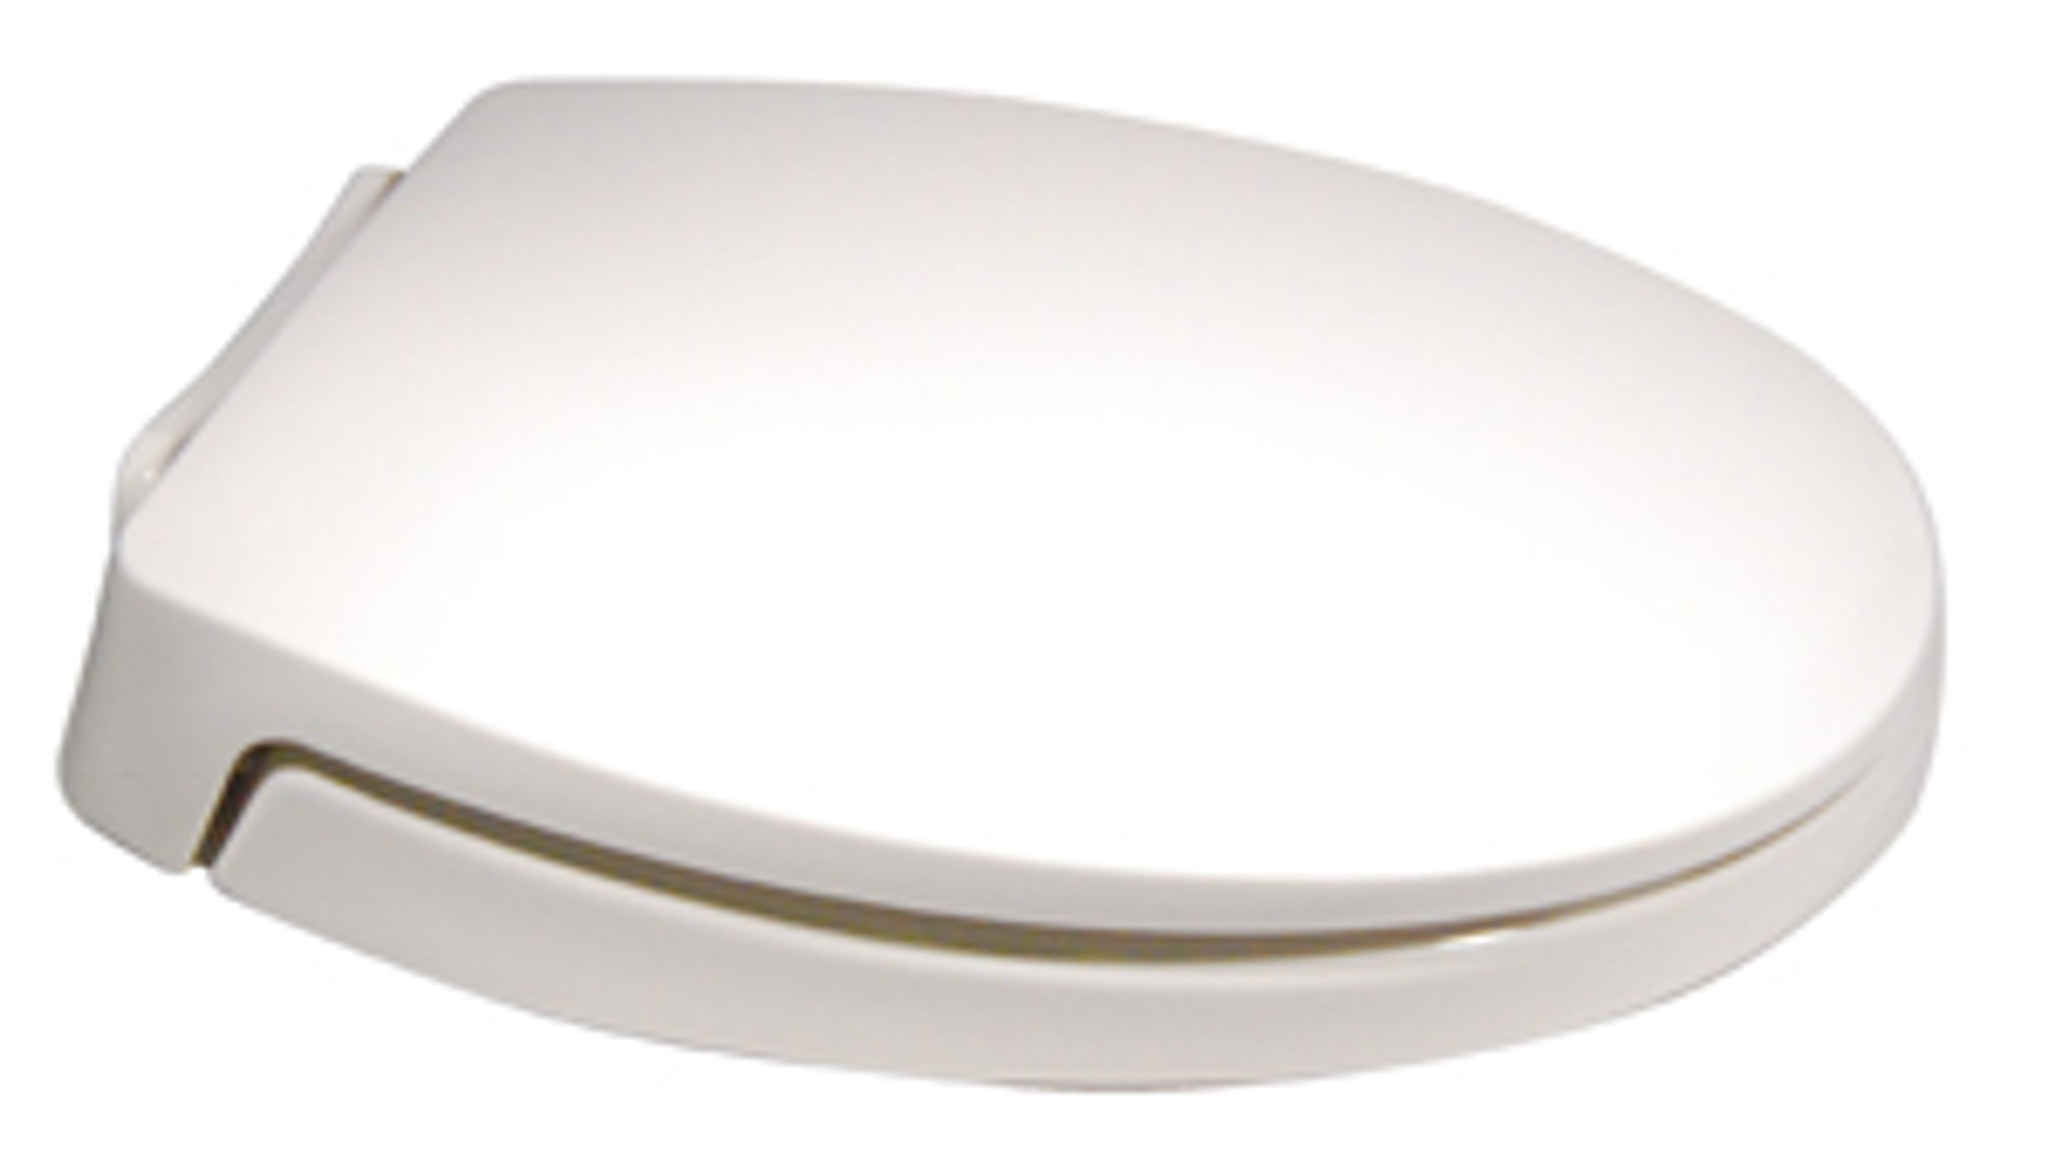 TOTO SS114#11 Elongated Front Toilet Seat with Lid